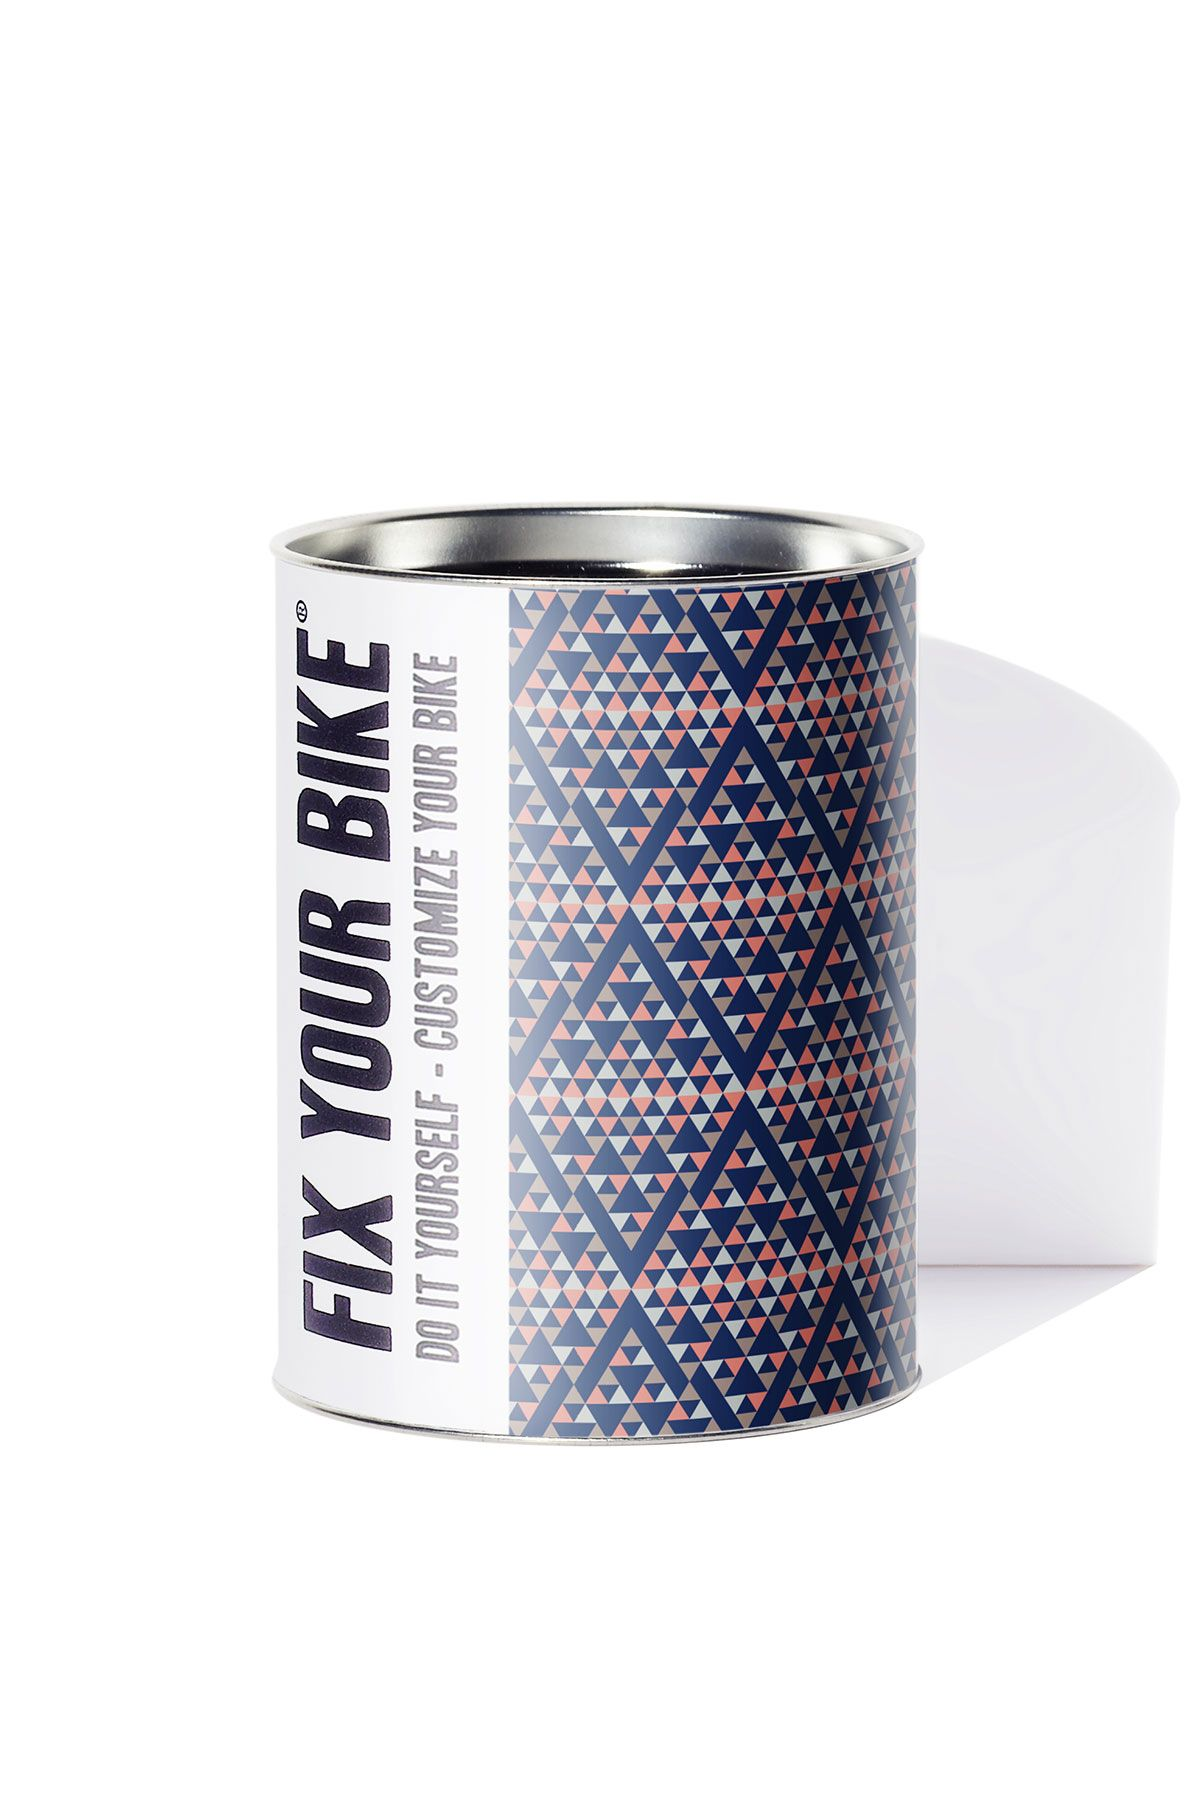 Fix Your Bike. Geometric Rhombus graphic pattern. 7 piece graphic adhesive kit design by tagmi to protect and peronalize man or women bike frame. waterproof, uv resistant and antiabrasion. made in italy www.fixyourbike.it #DIY #doityourself #FYB